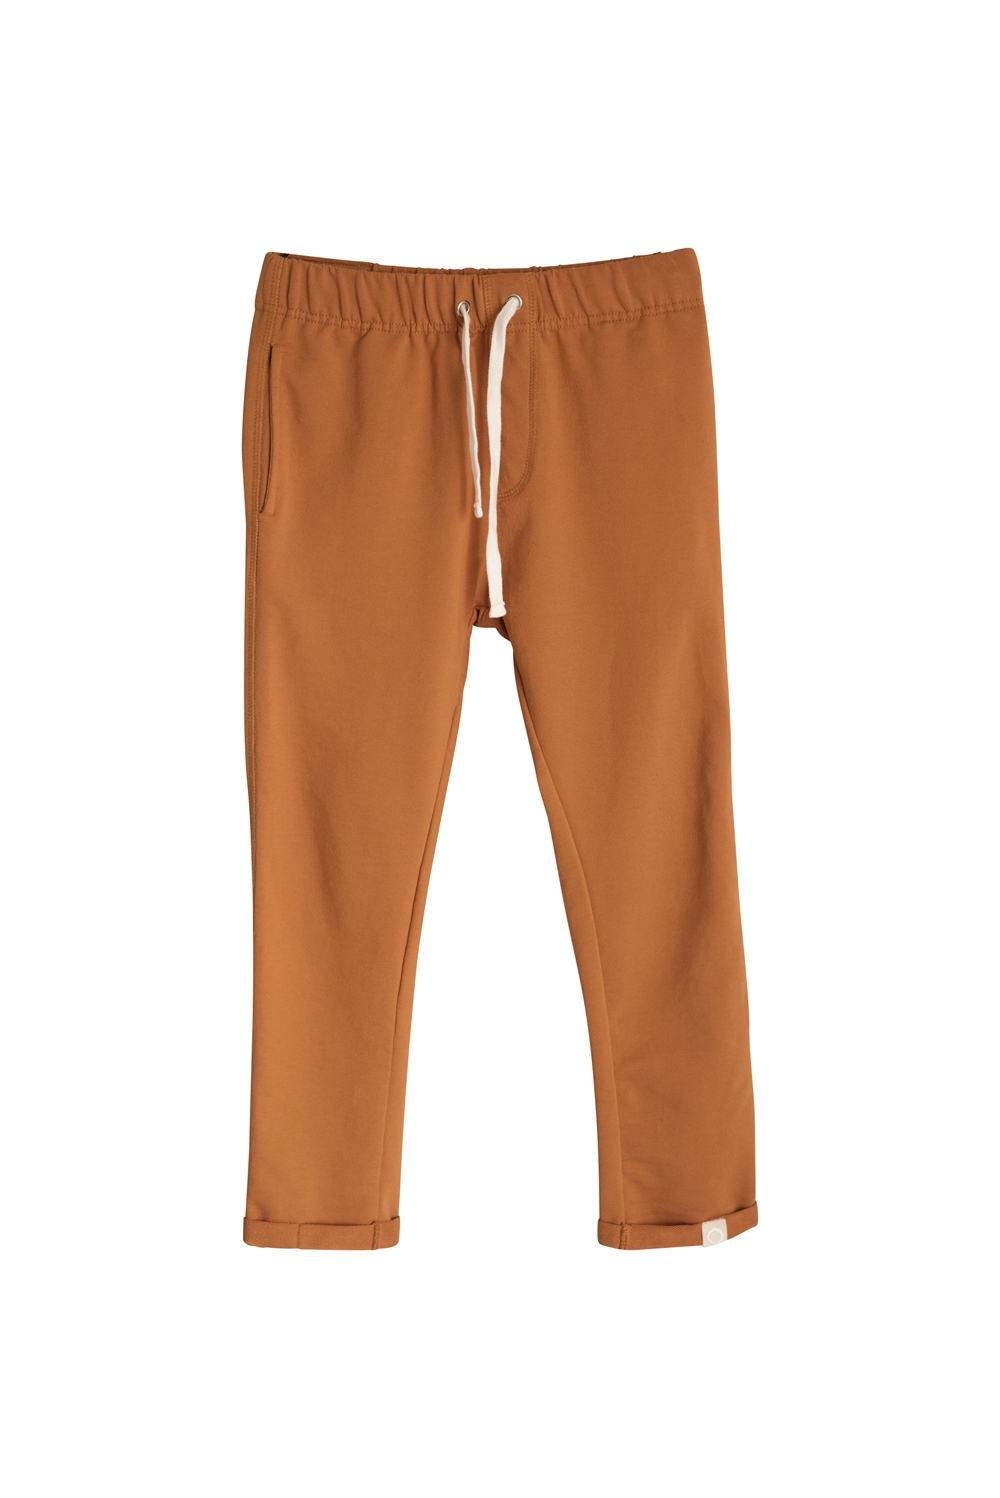 Bastian pants rusty